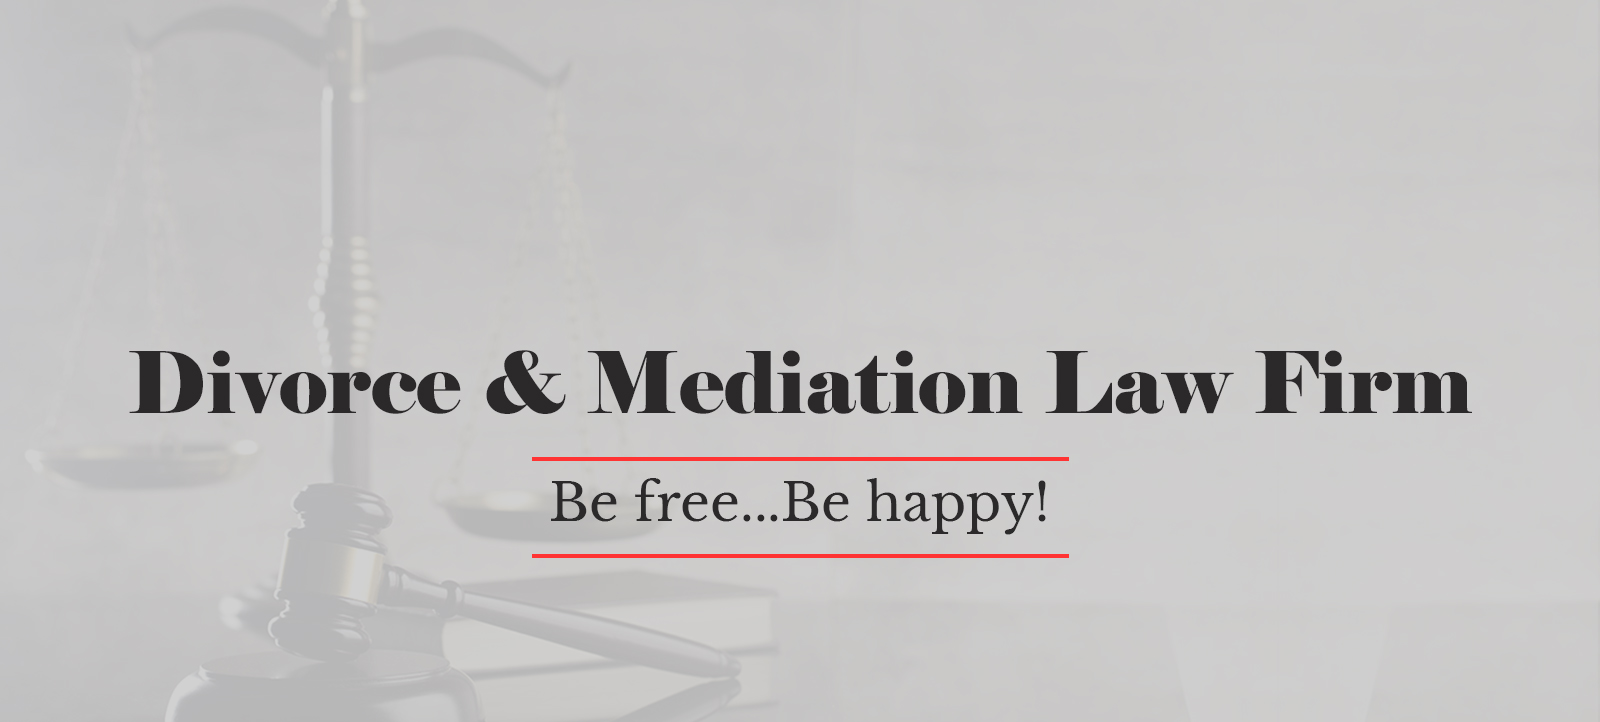 Divorce and Mediation Law Firm